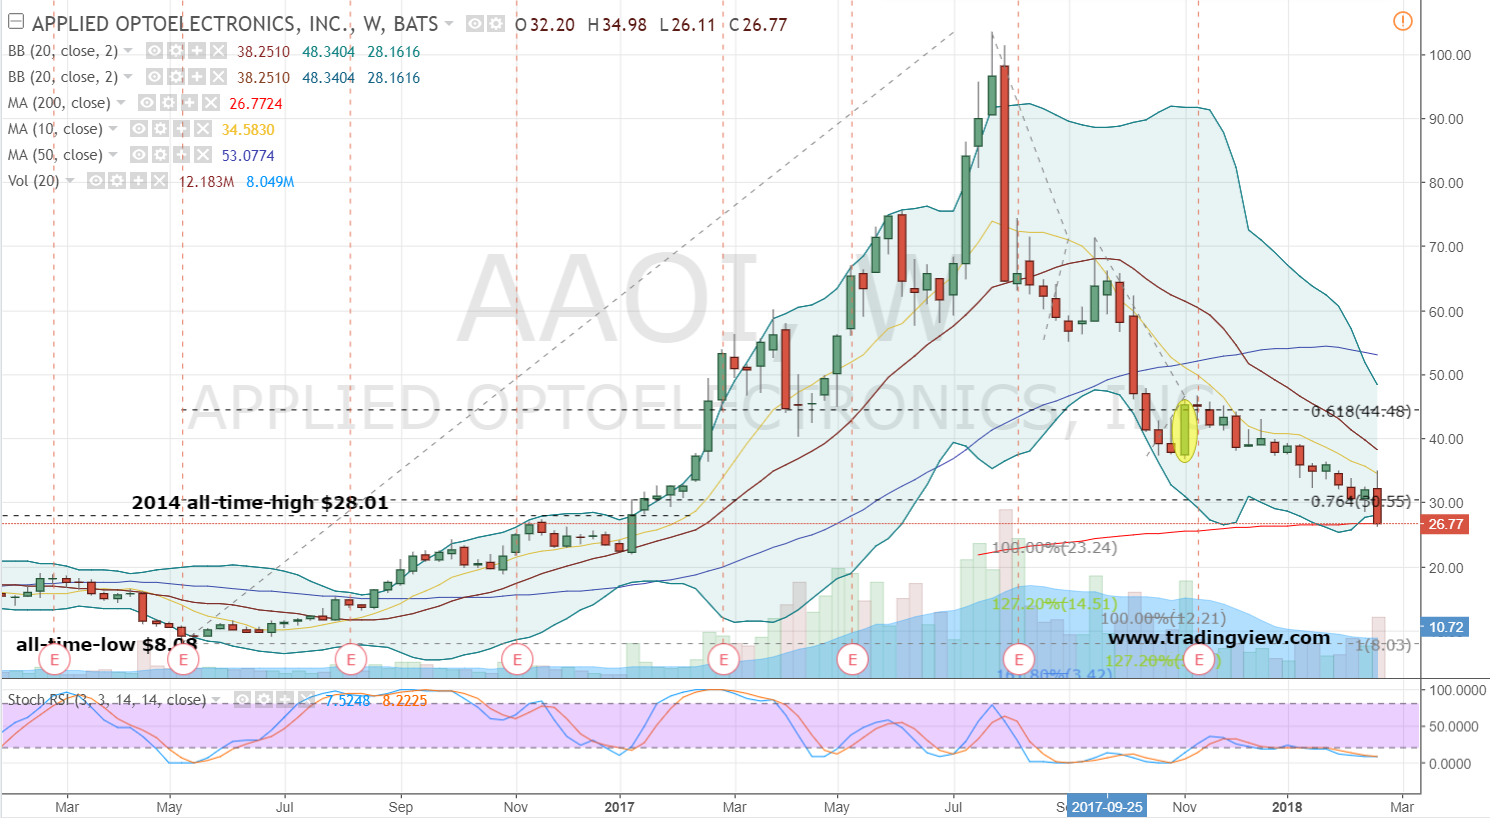 Applied Optoelectronics (AAOI) Issues Earnings Results